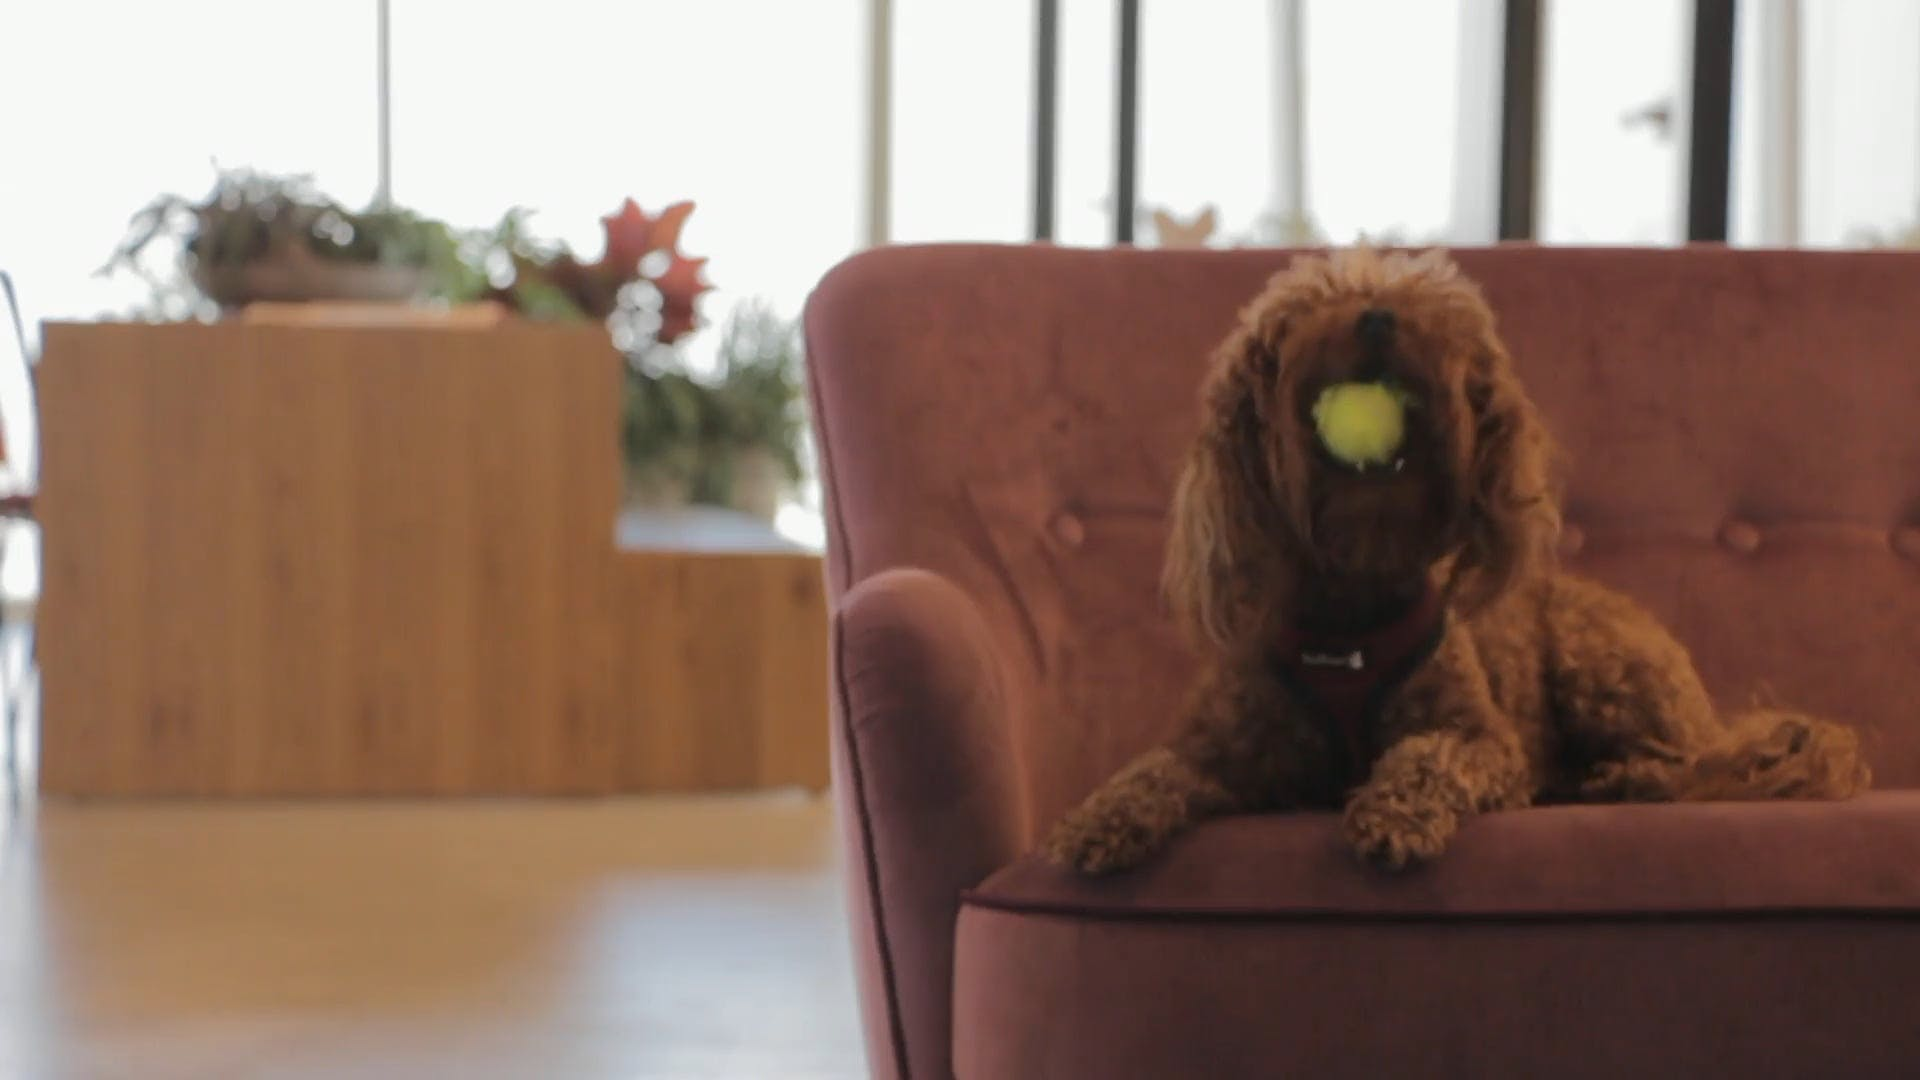 Video of a Brown Puppy Playing with a Ball